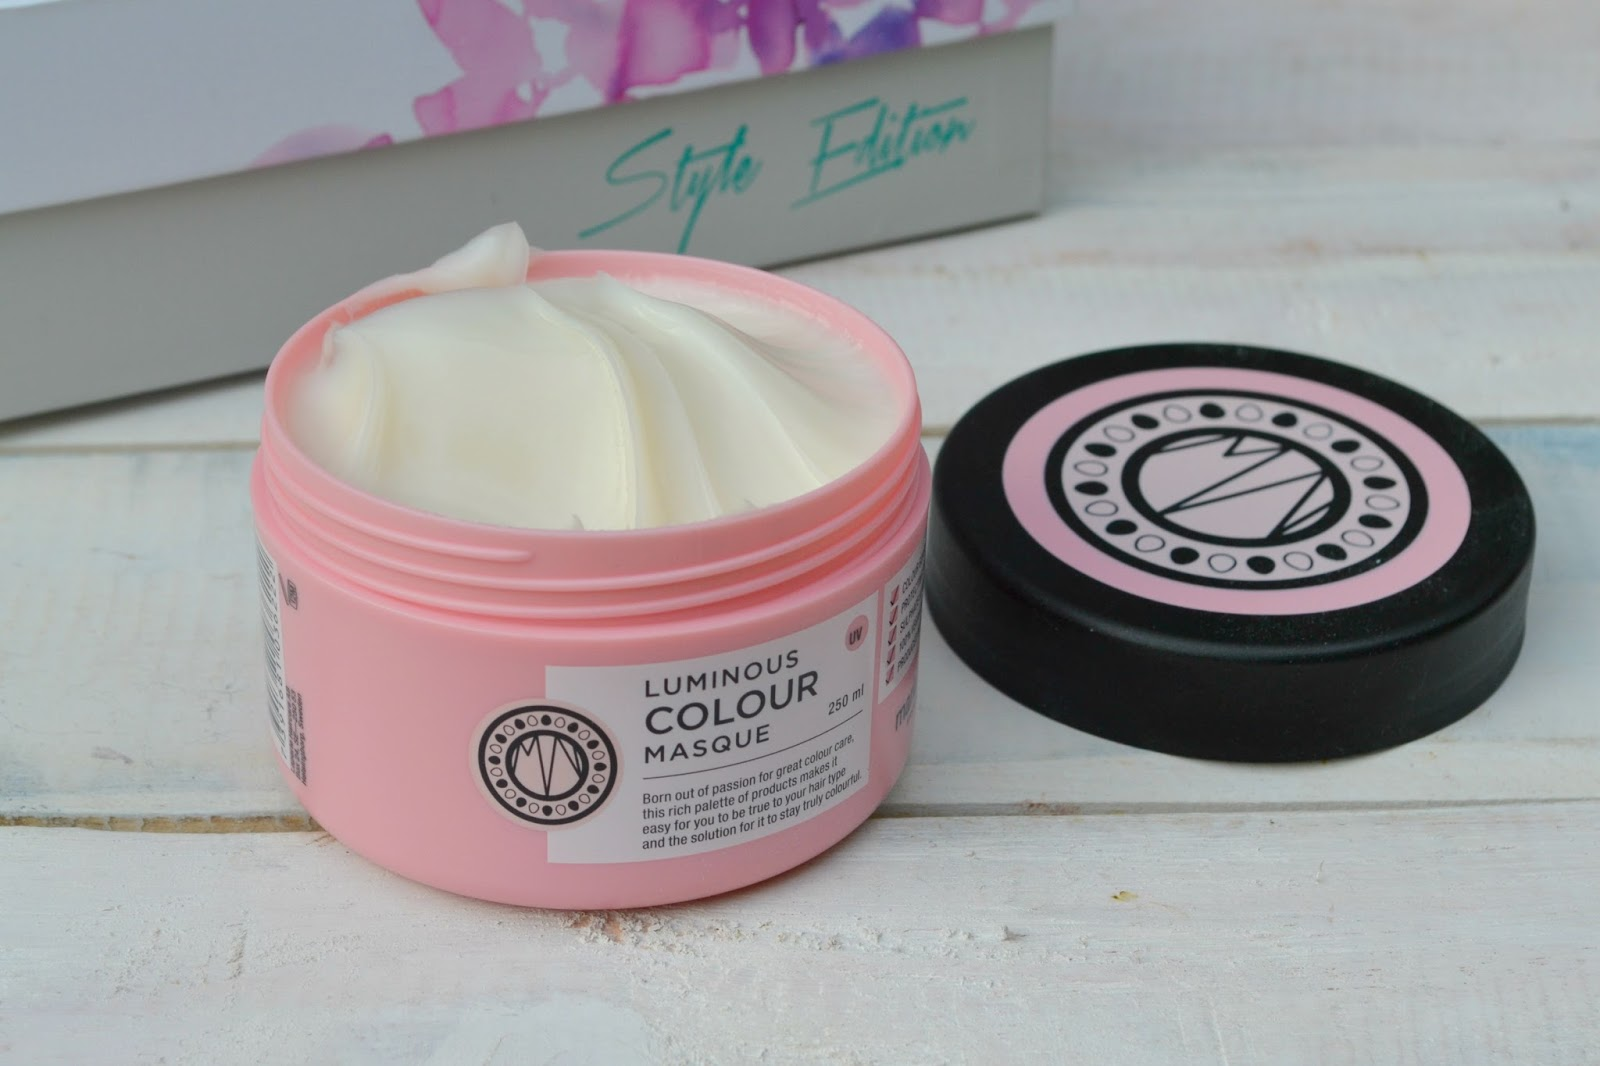 Luminous Colour Masque Review